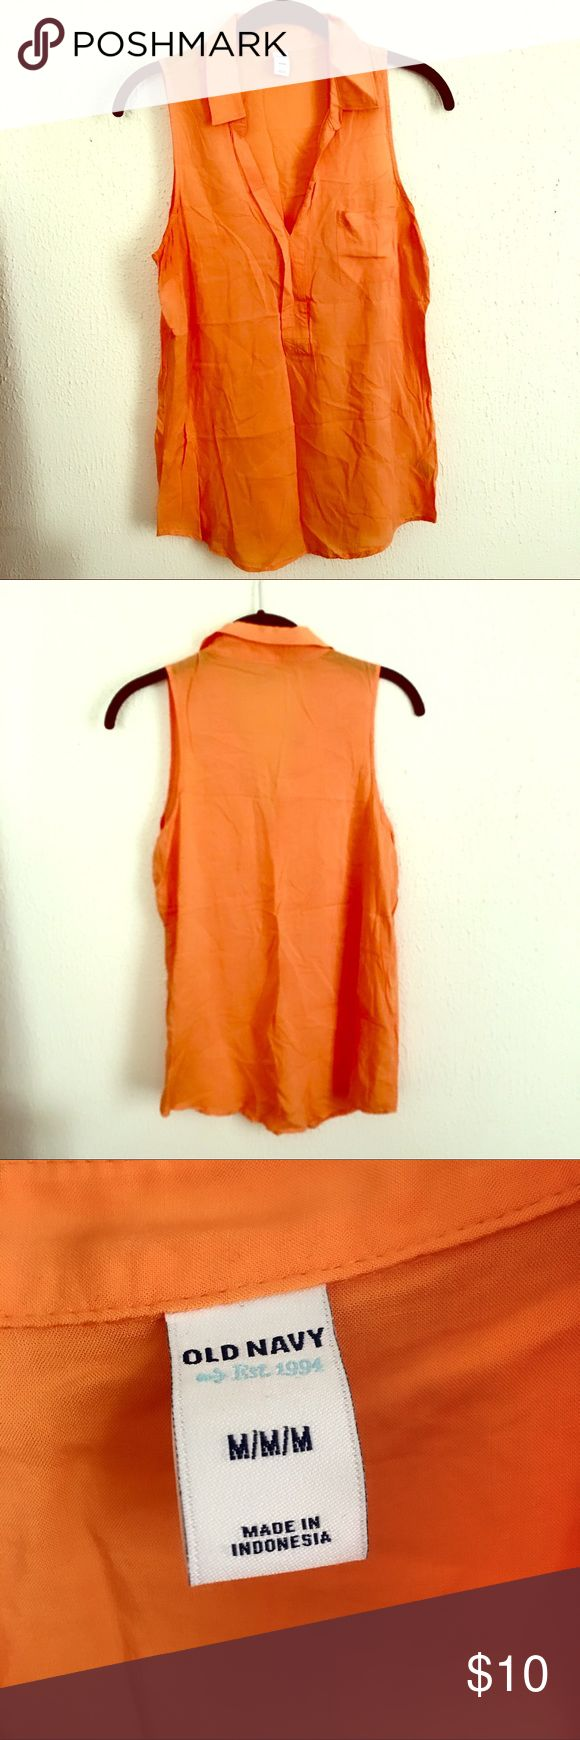 ❗️SALE❗️Old Navy Bright Orange Collar No Sleeves Lightweight silky orange sleeveless blouse with collar and buttons. Very cool on hot summer days. Note: Does wrinkle easily but takes a mere 2 mins to iron and go- or spray the wrinkle release like I do! I will iron it before it goes out. Looks super summery and sexy with white skinny jeans!!!! Old Navy Tops Blouses